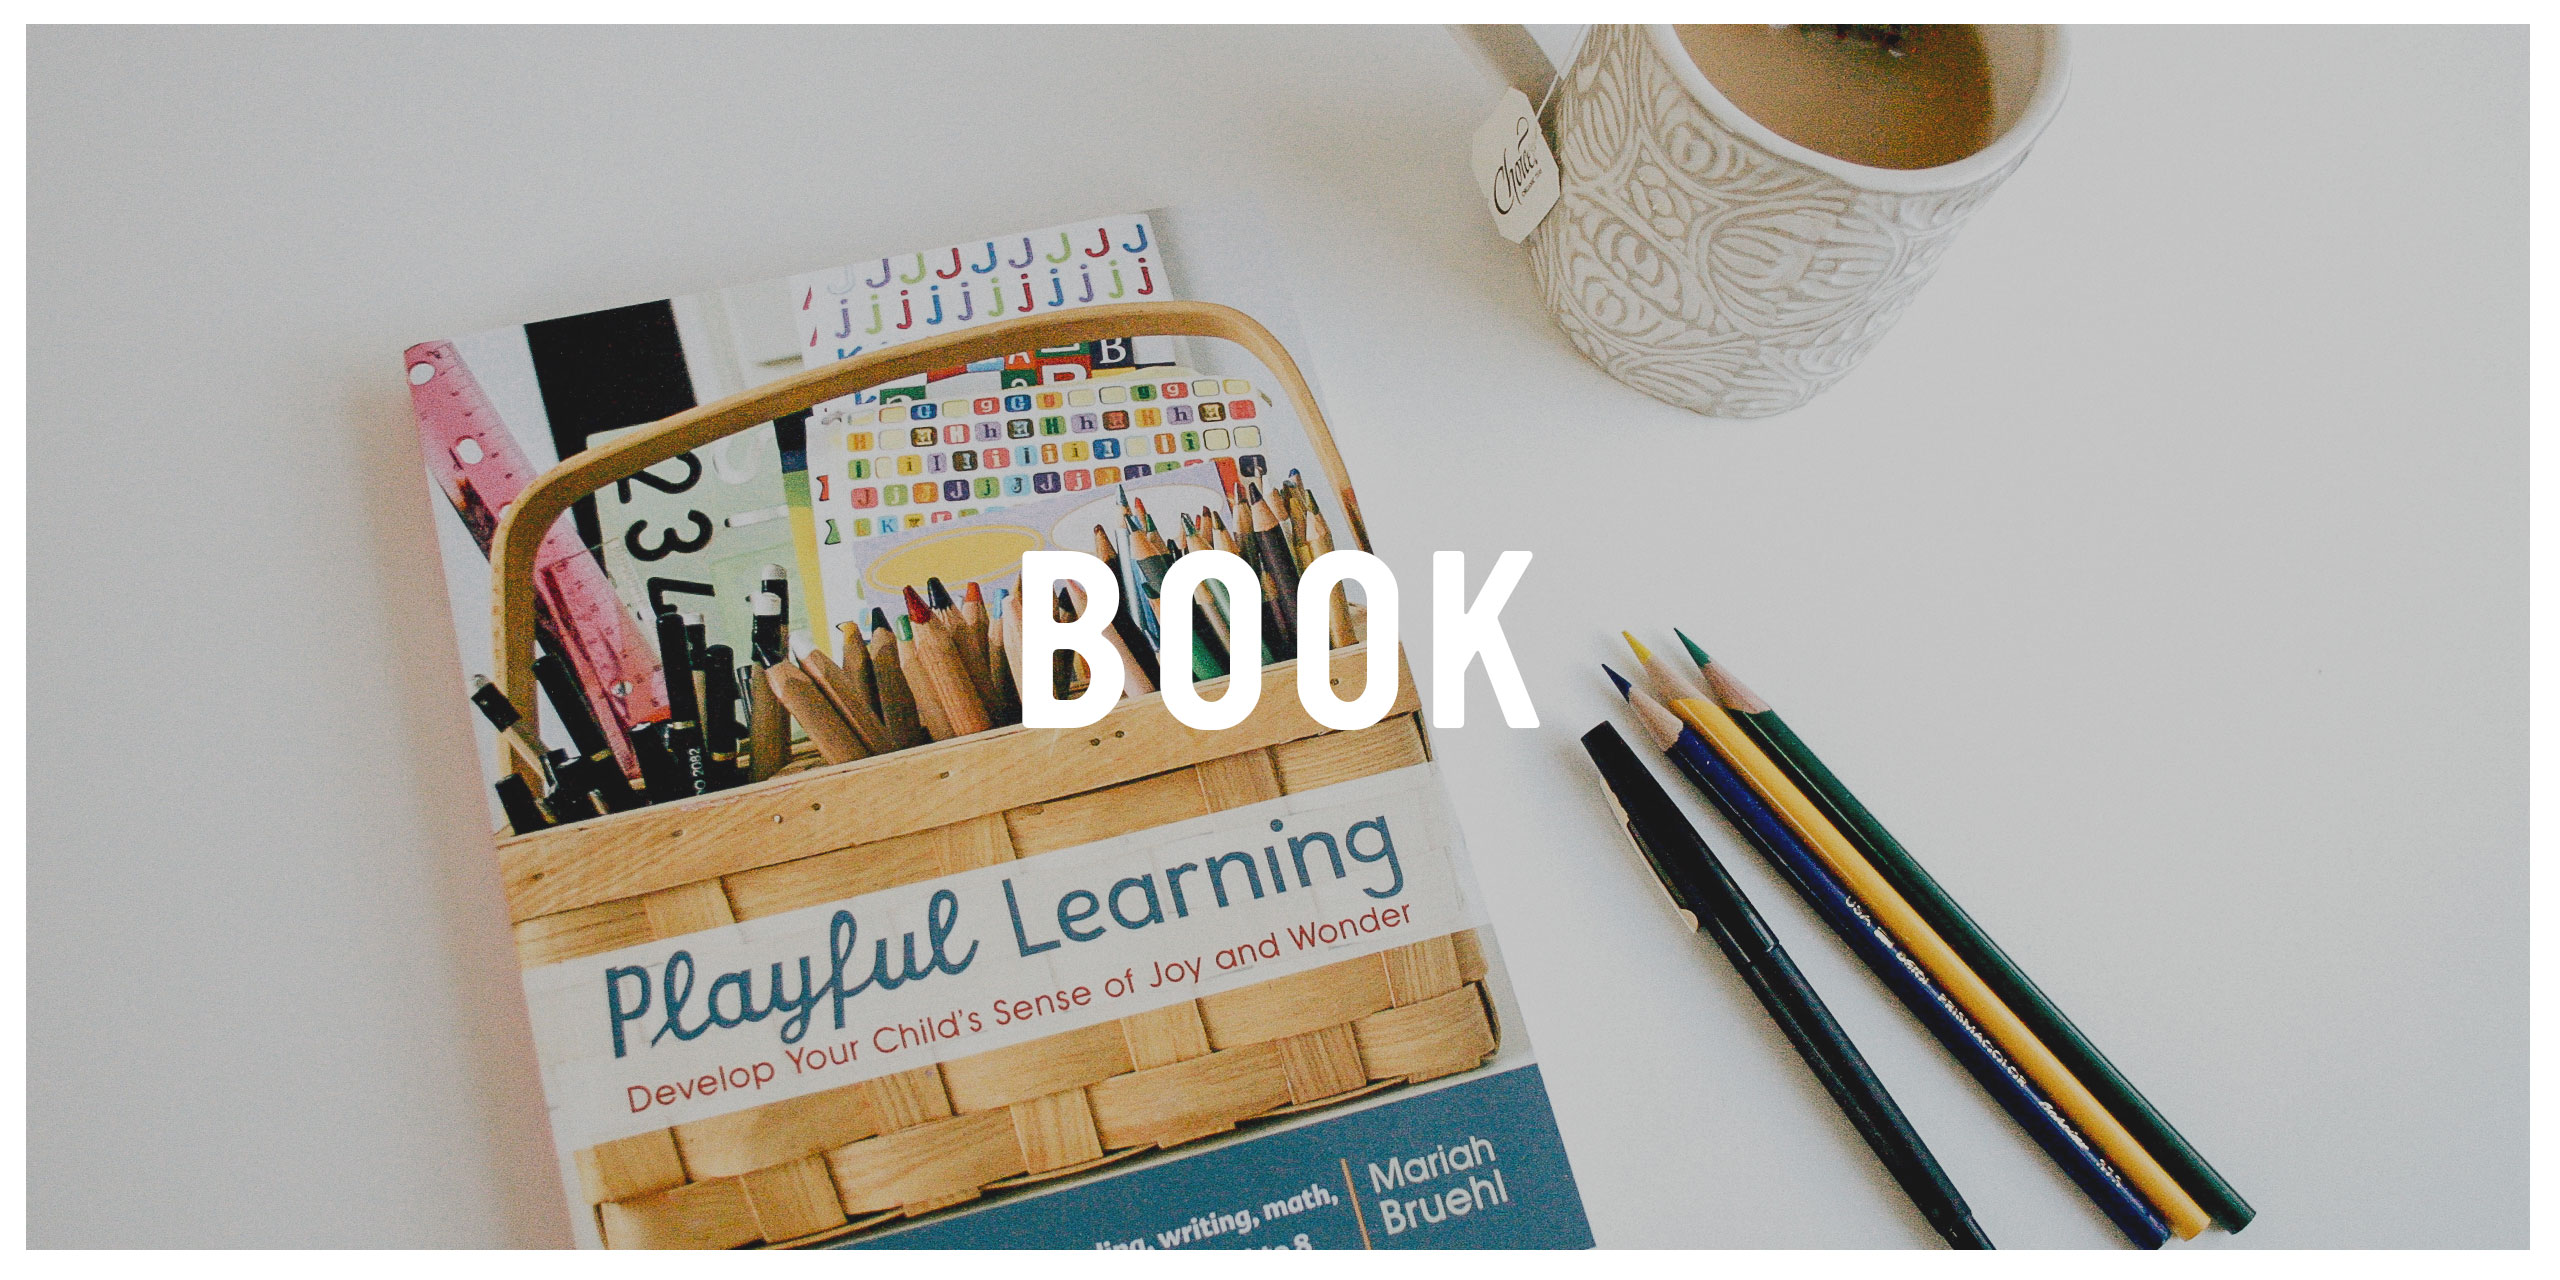 Playful Learning: The Book